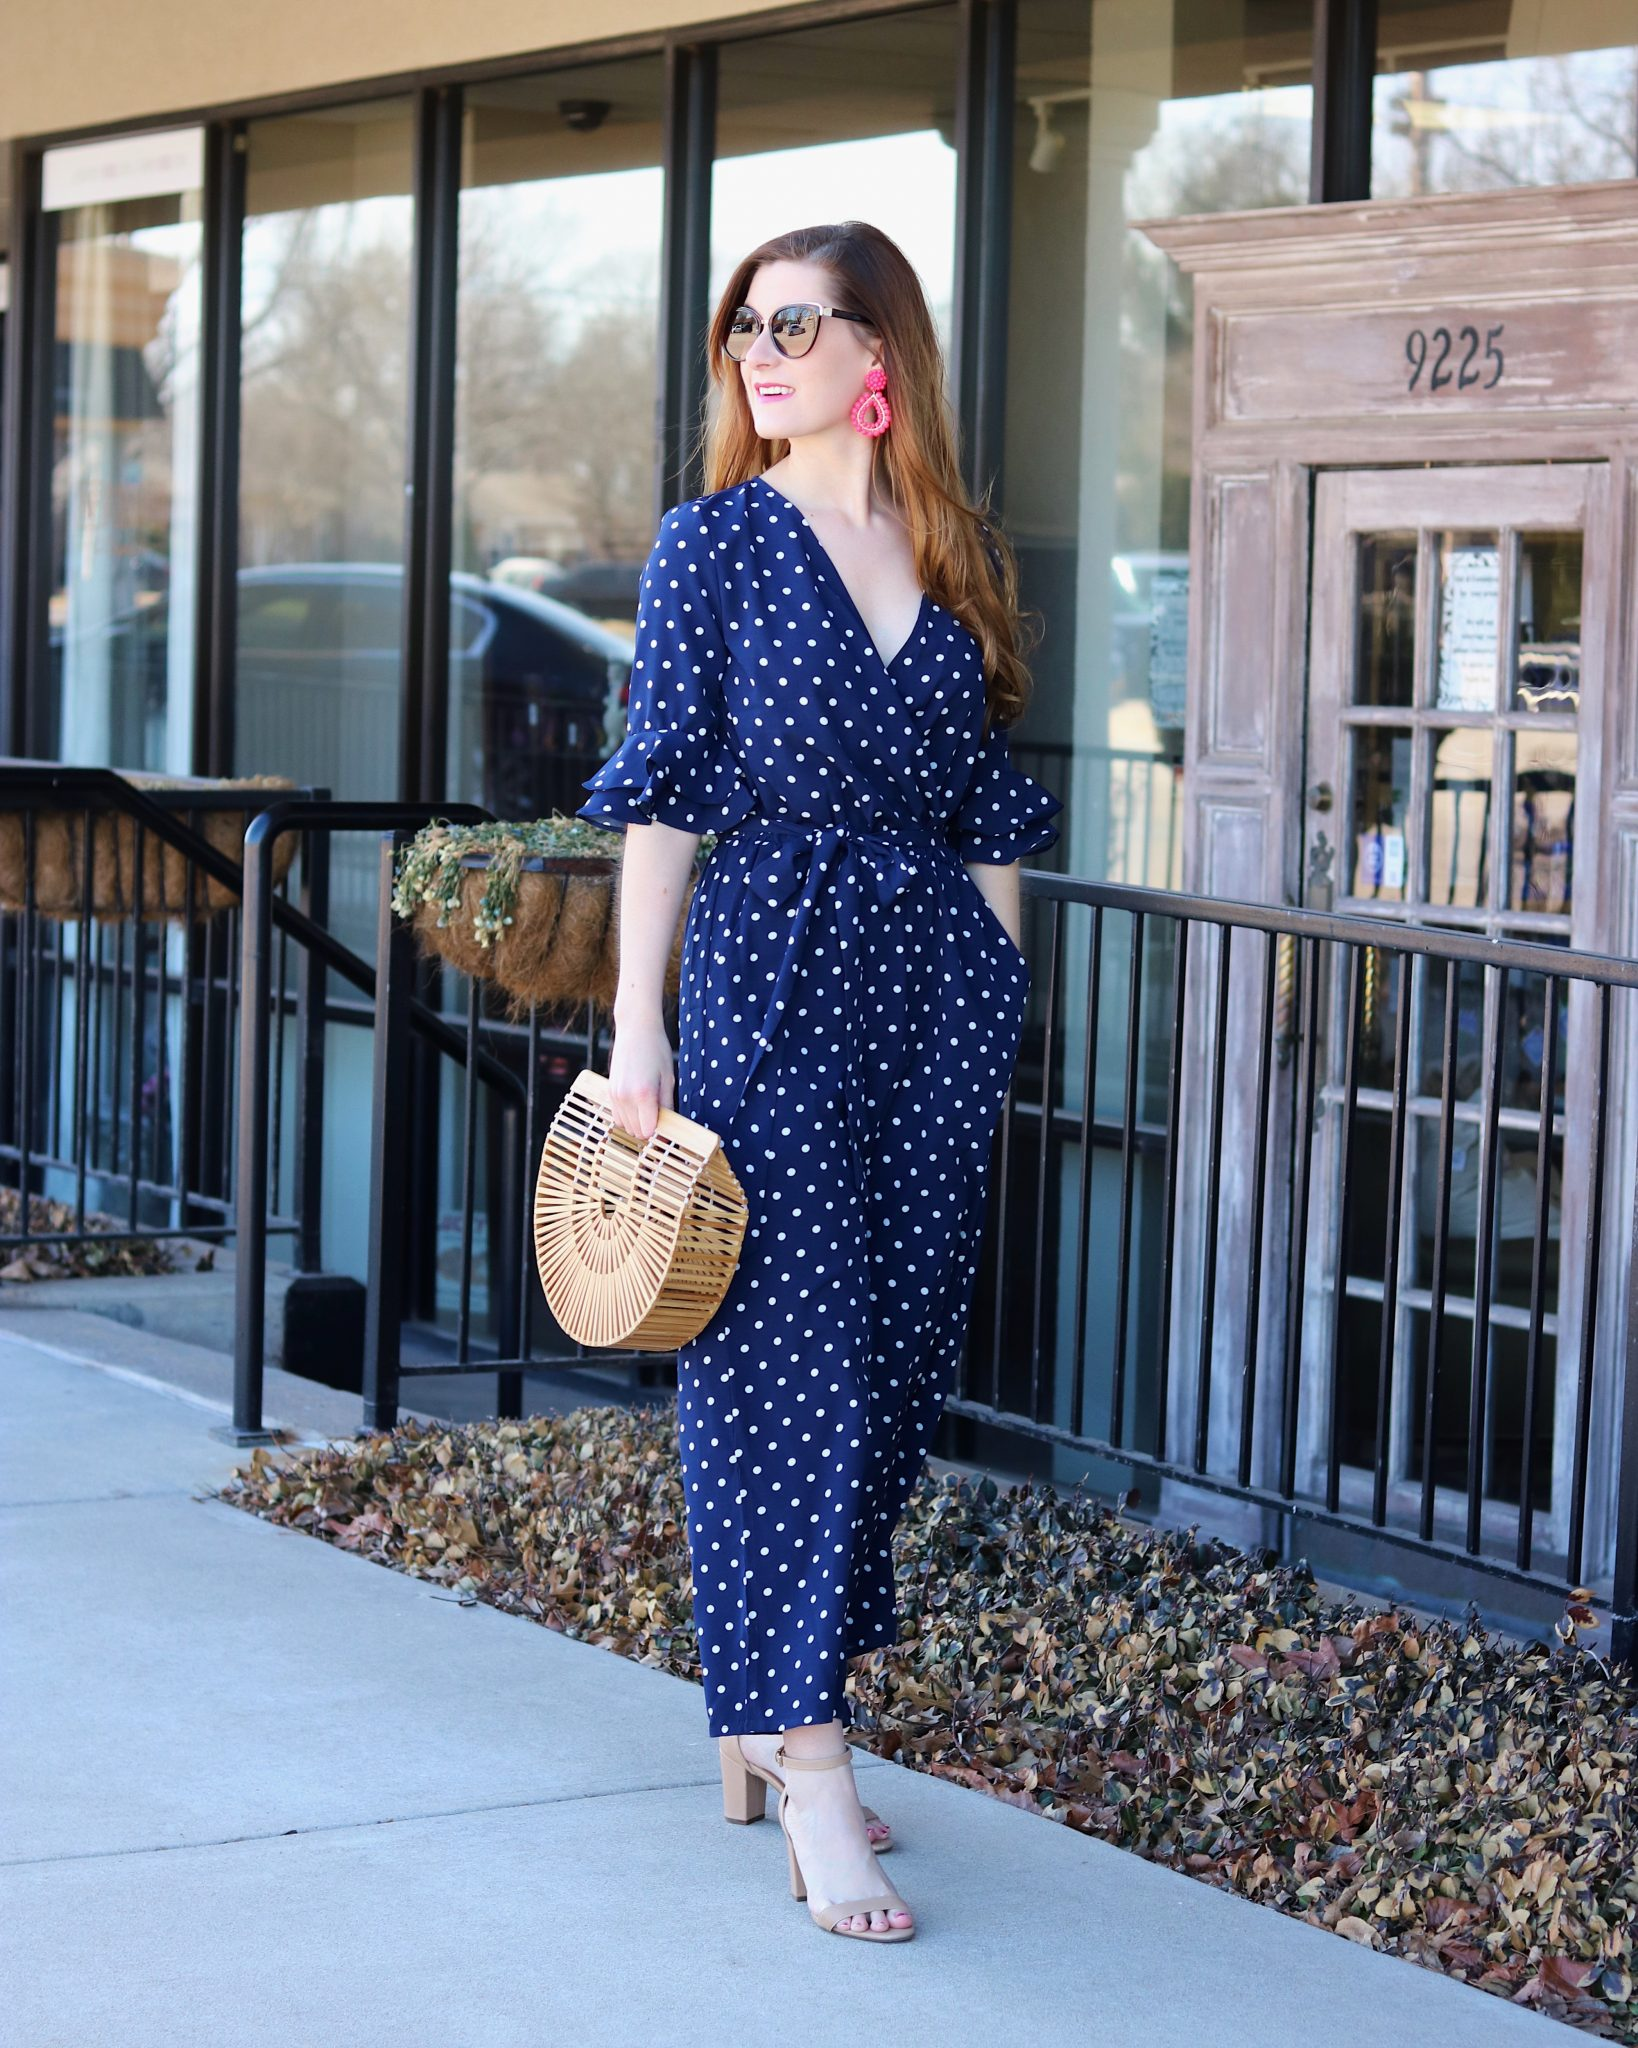 a09c7ea1d12 abyersguide.comSpring Trends  Polka DotsAre you ready for spring to start  and are planning your wardrobe  Shop with me. I am sharing my favorite  spring ...